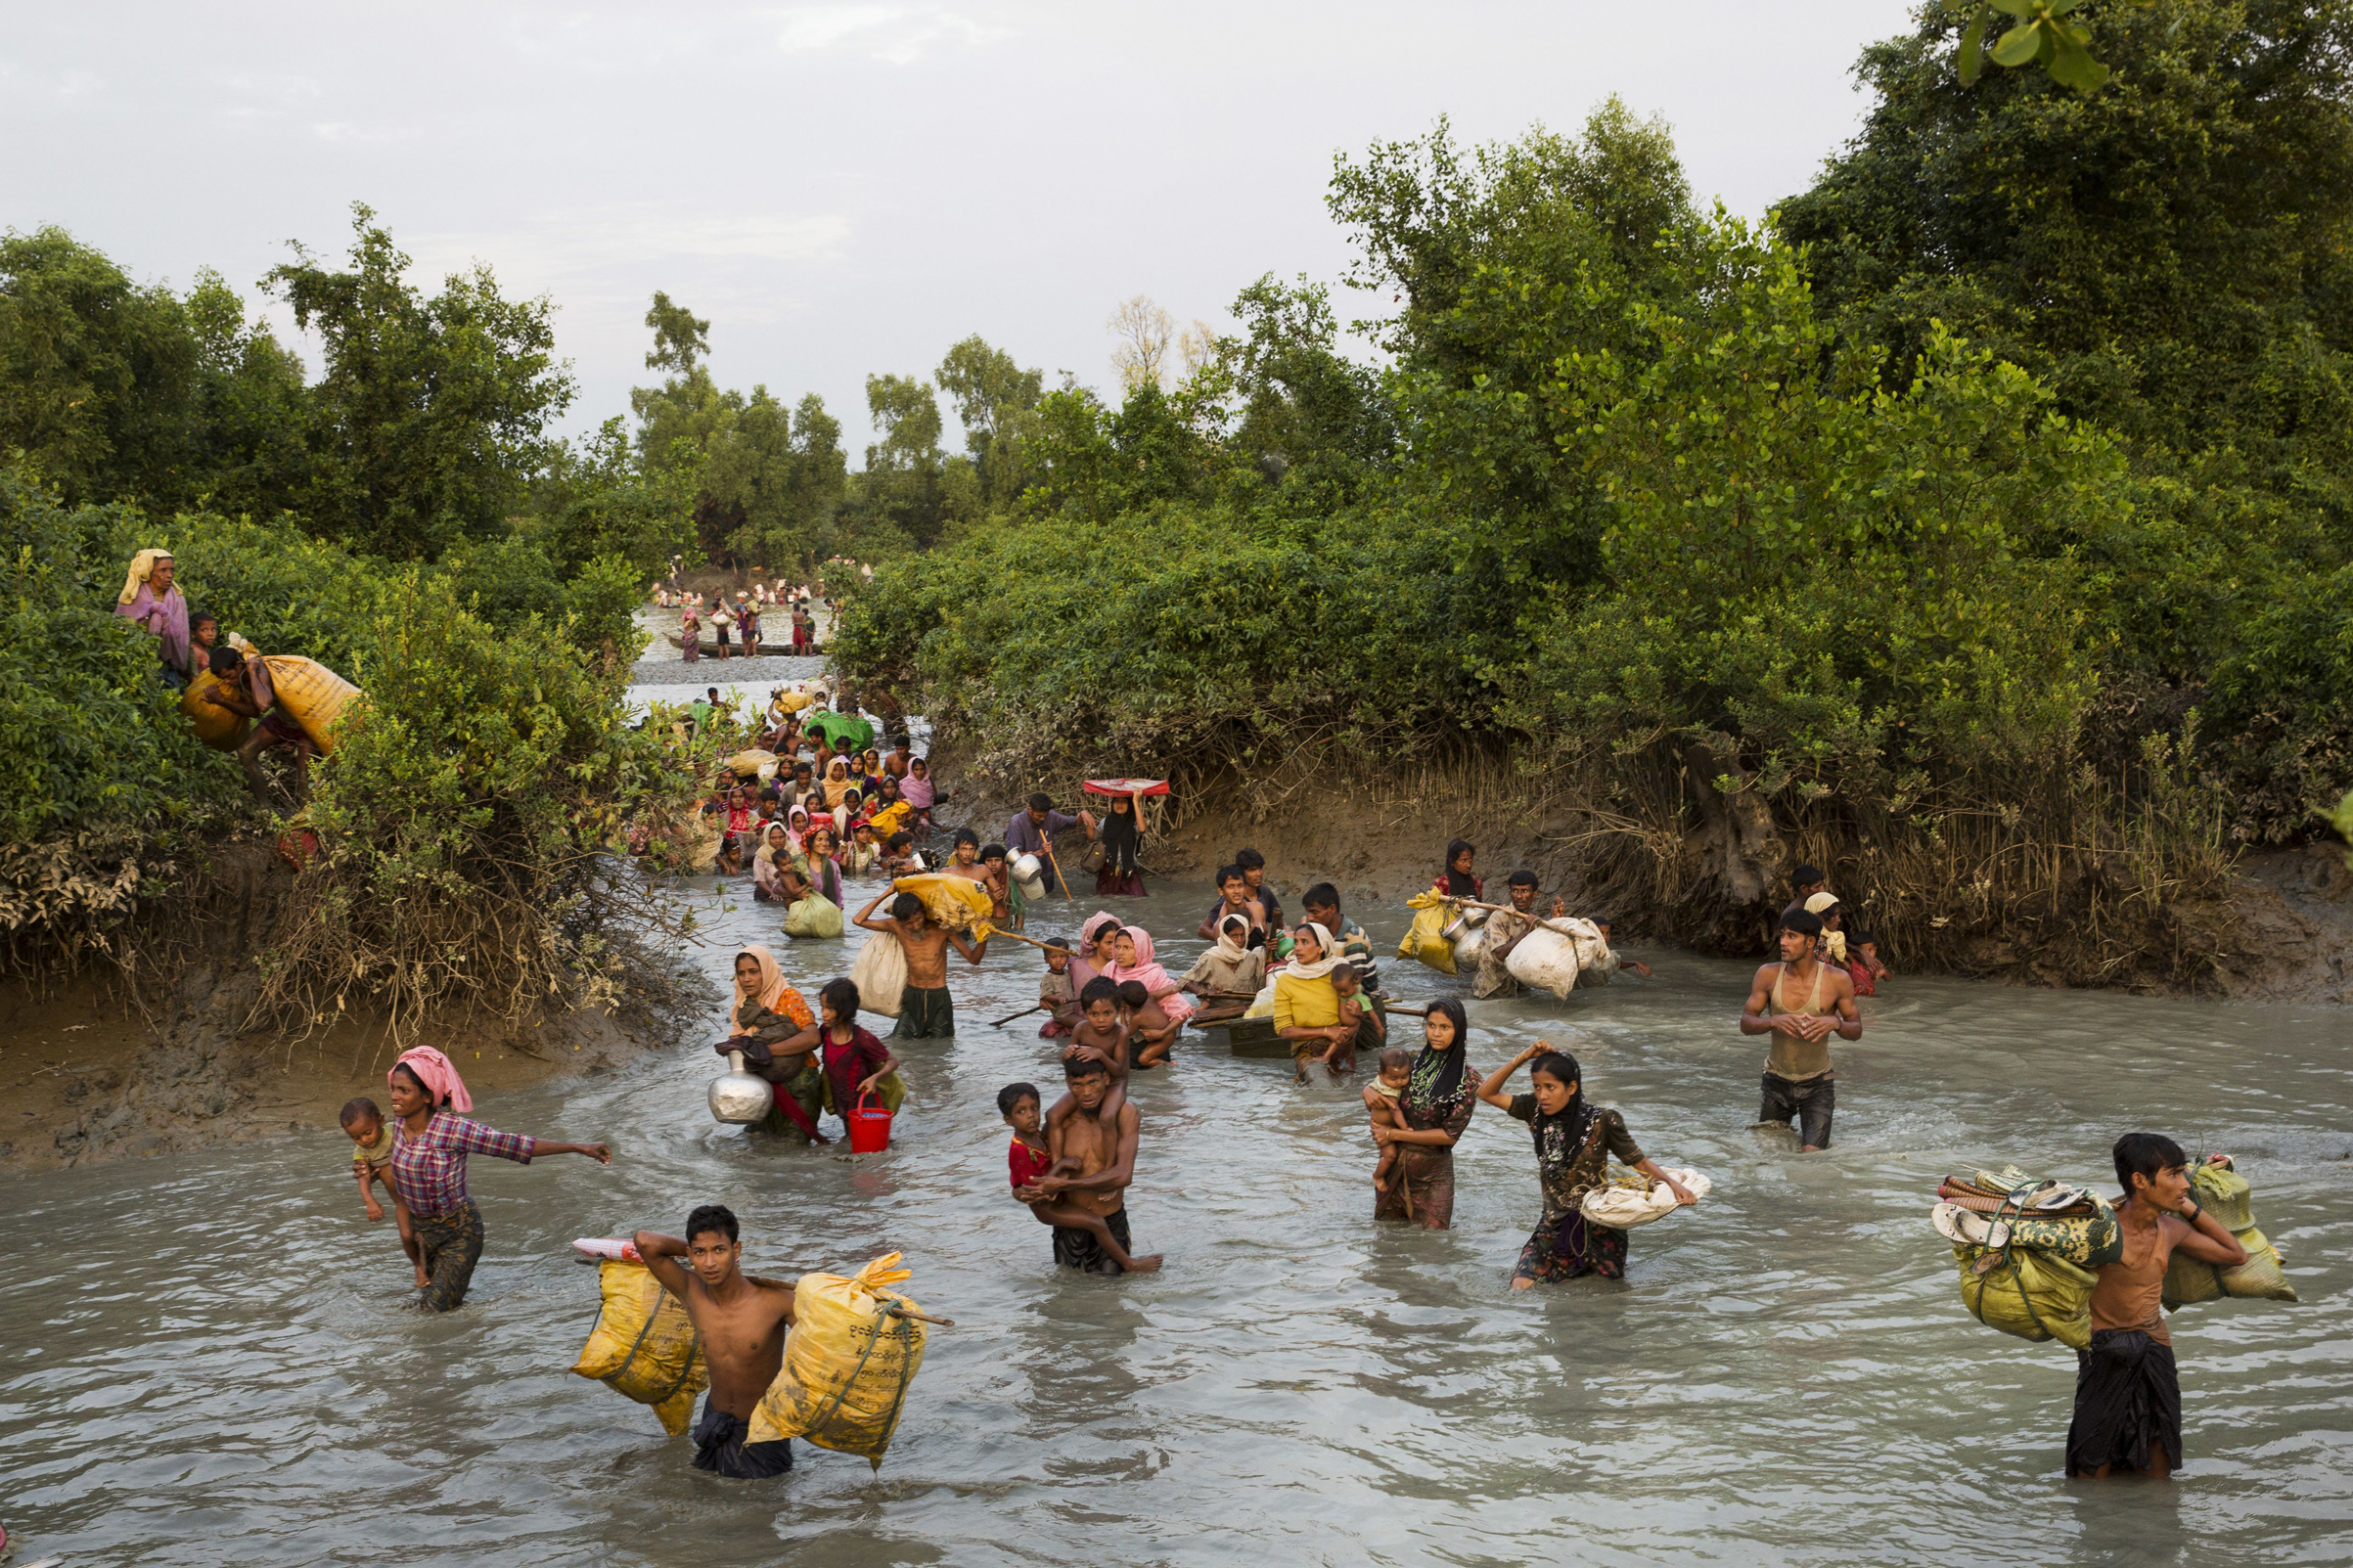 Rohingya wade through the Naf River after having just crossed over from Myanmar into Bangladesh, near Palong Khali, Bangladesh, on Nov. 1, 2017.